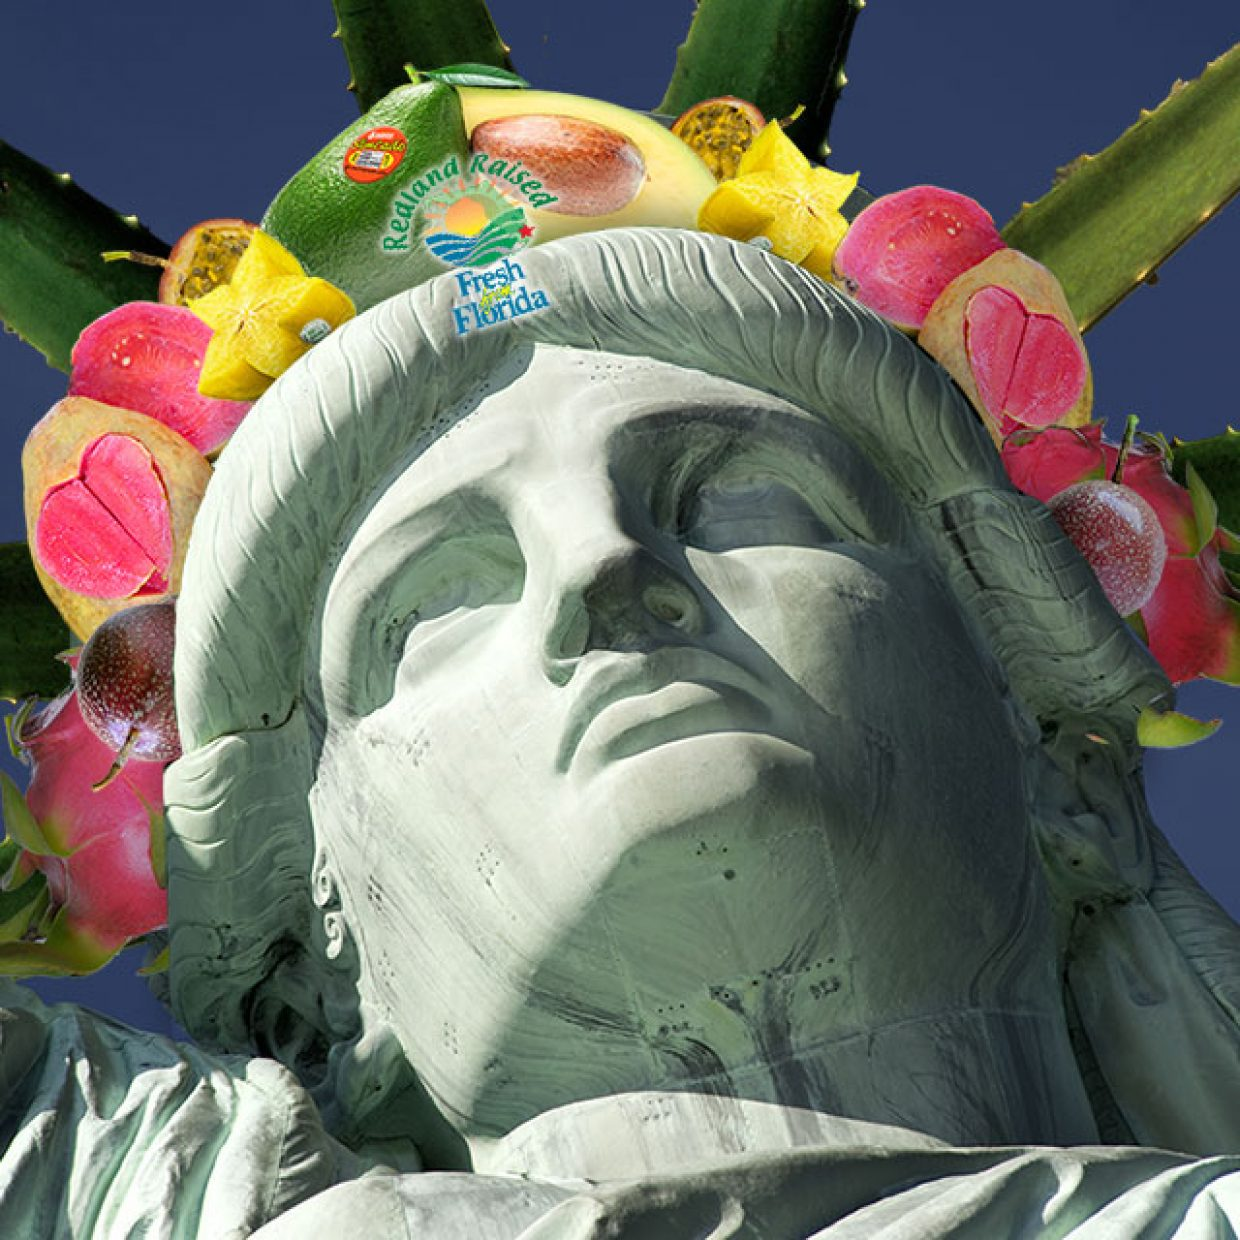 Statue of tropicals grown in the USA